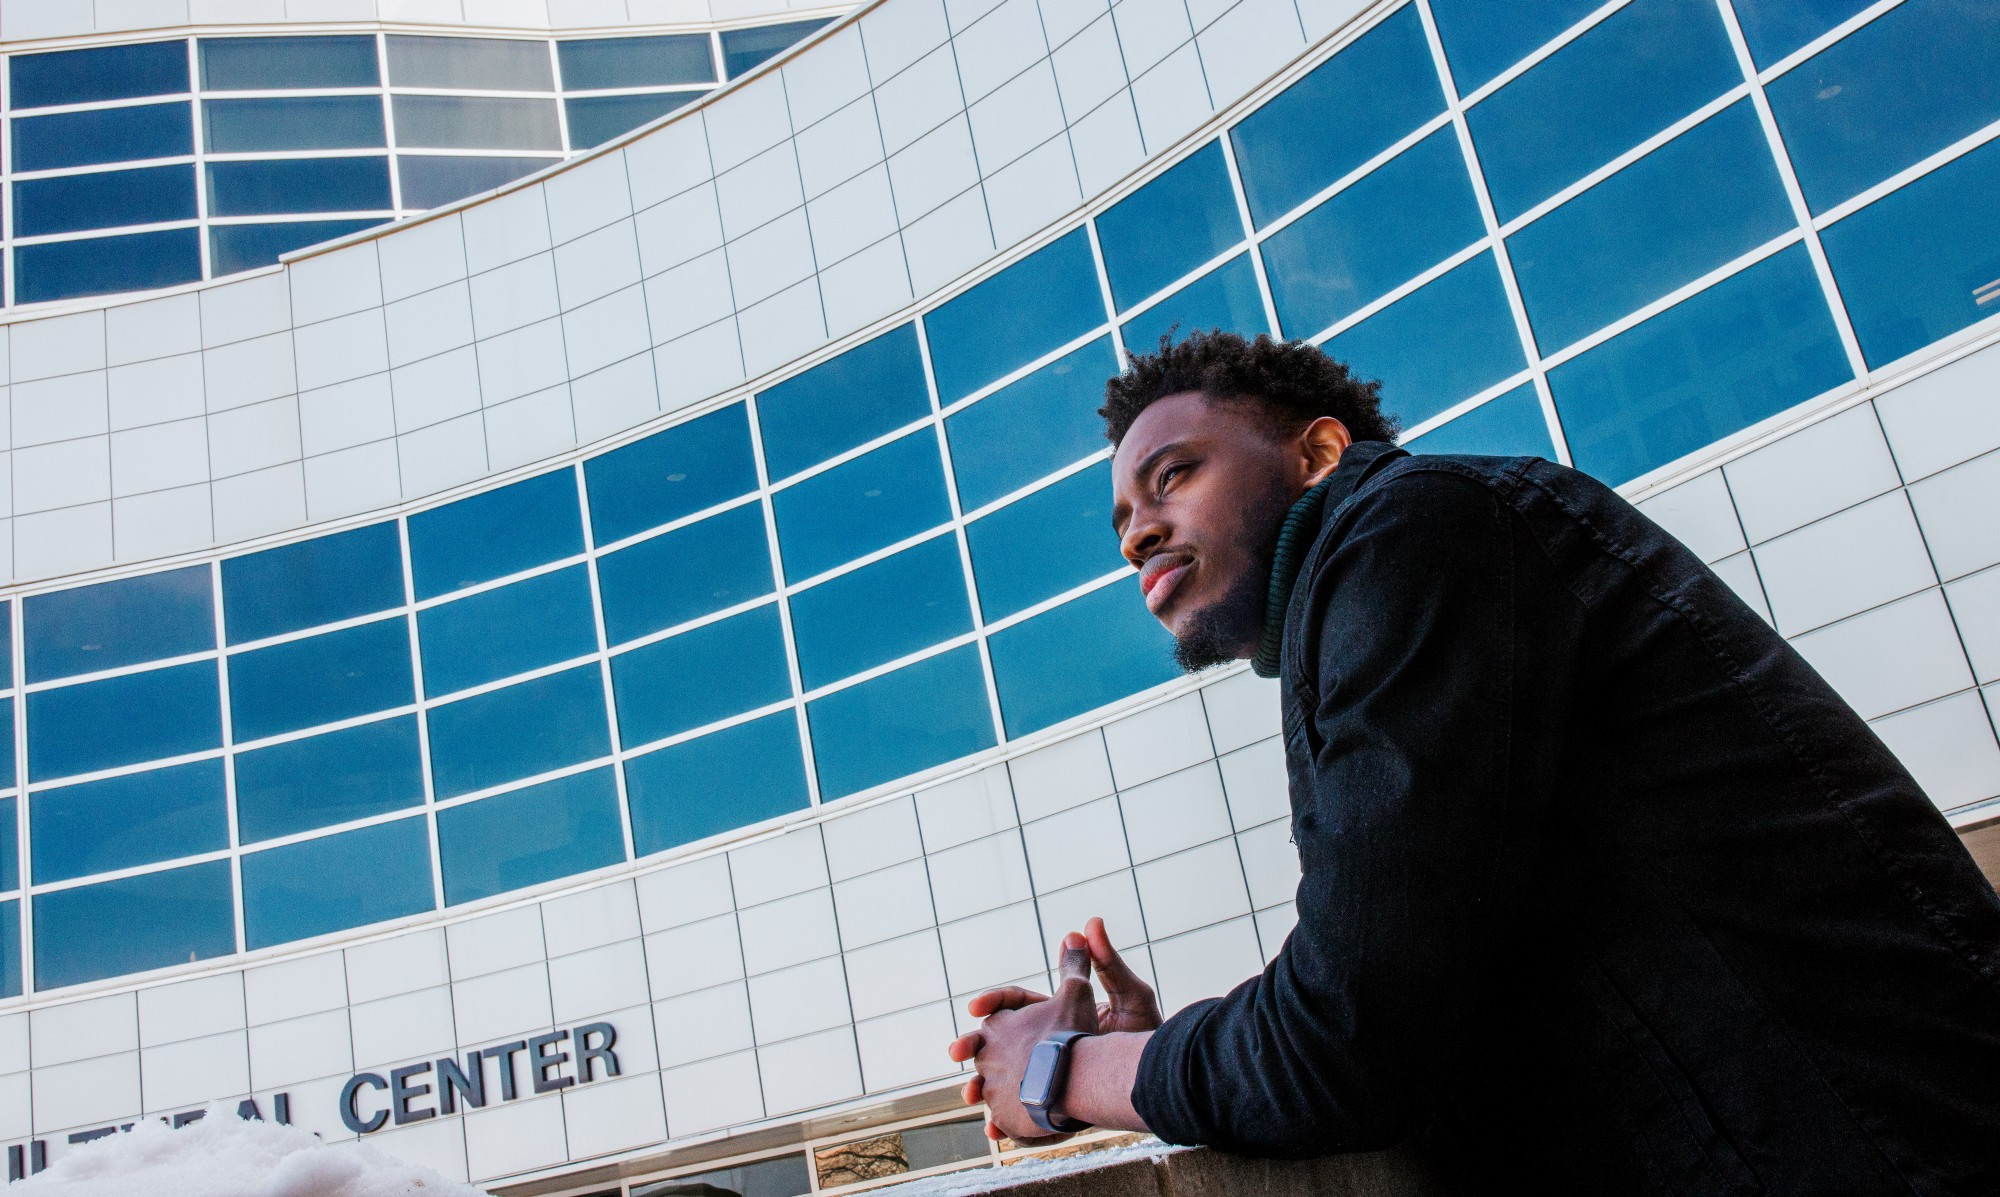 Damien poses outside the Jackie Gaughan Multicultural Center as he looks to the left